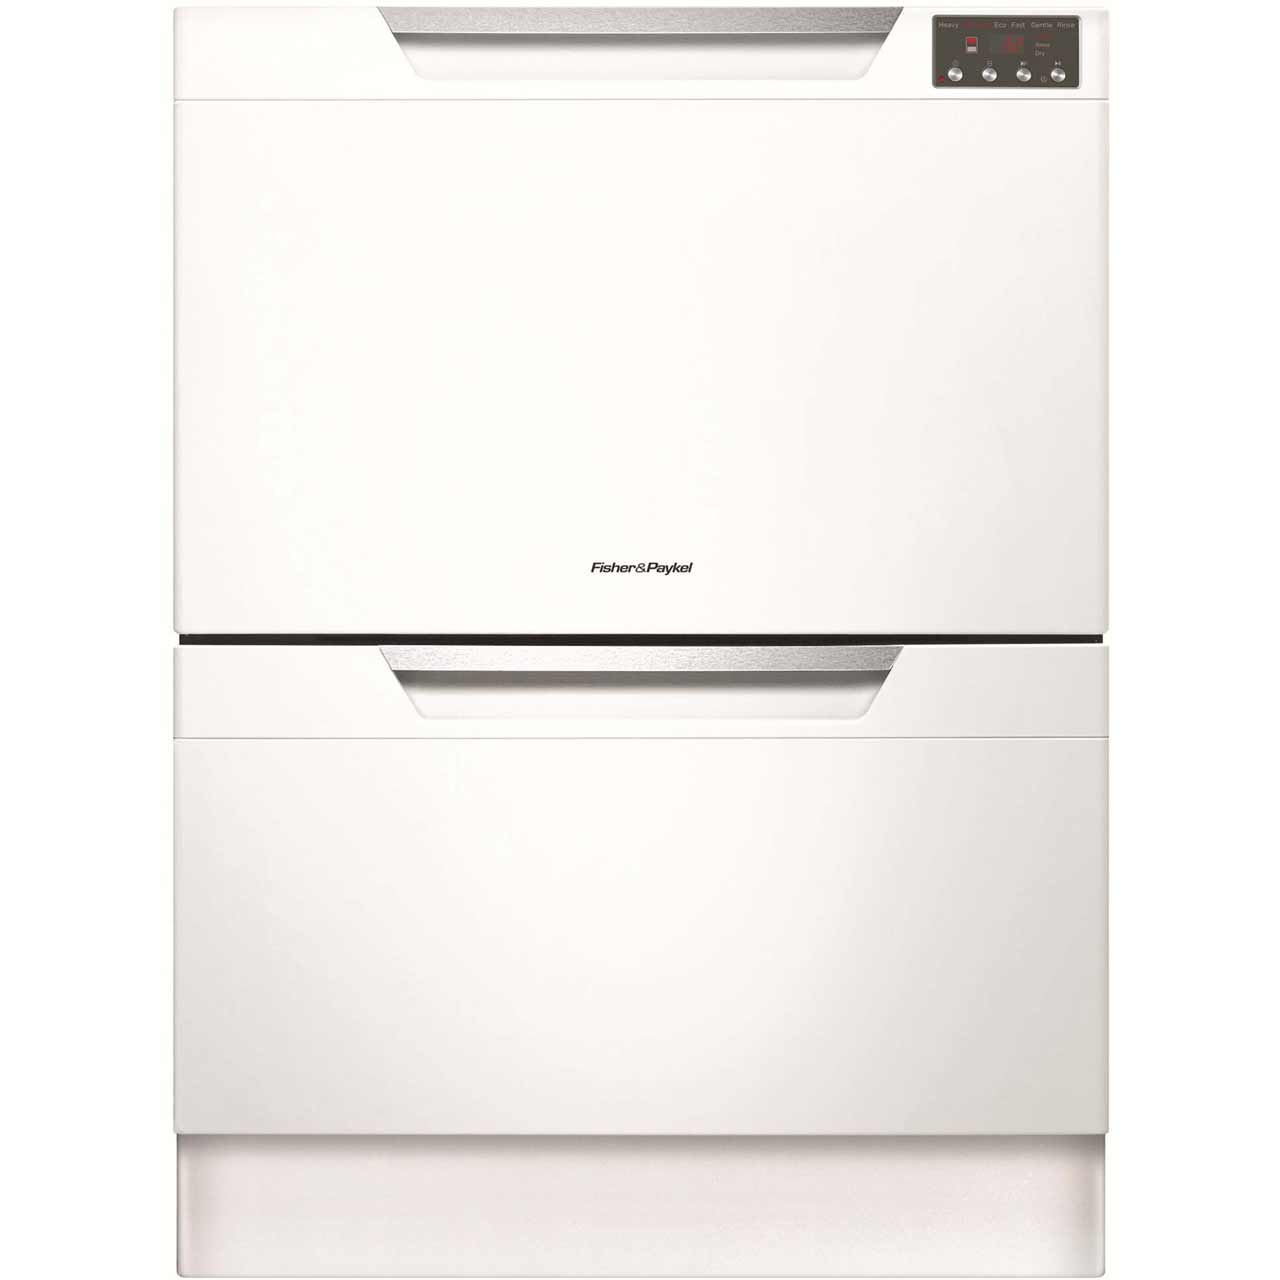 Fisher & Paykel Double DishDrawer? DD60DAHW8 Integrated Dishwasher in White